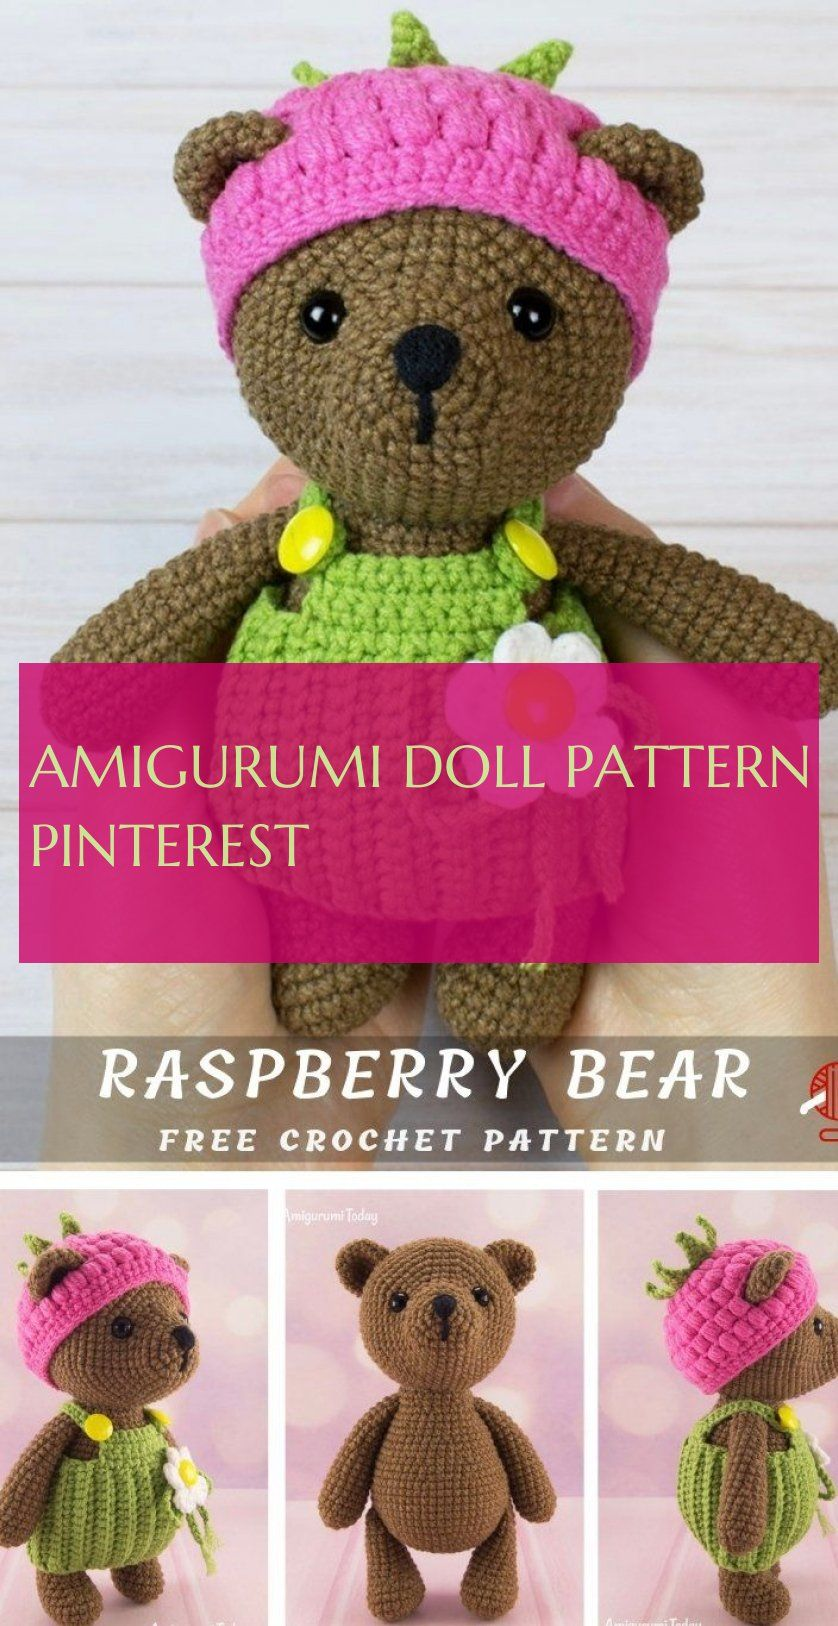 Our Favorite Pinterest Crochet Patterns (With images)   Crochet ...   1626x838